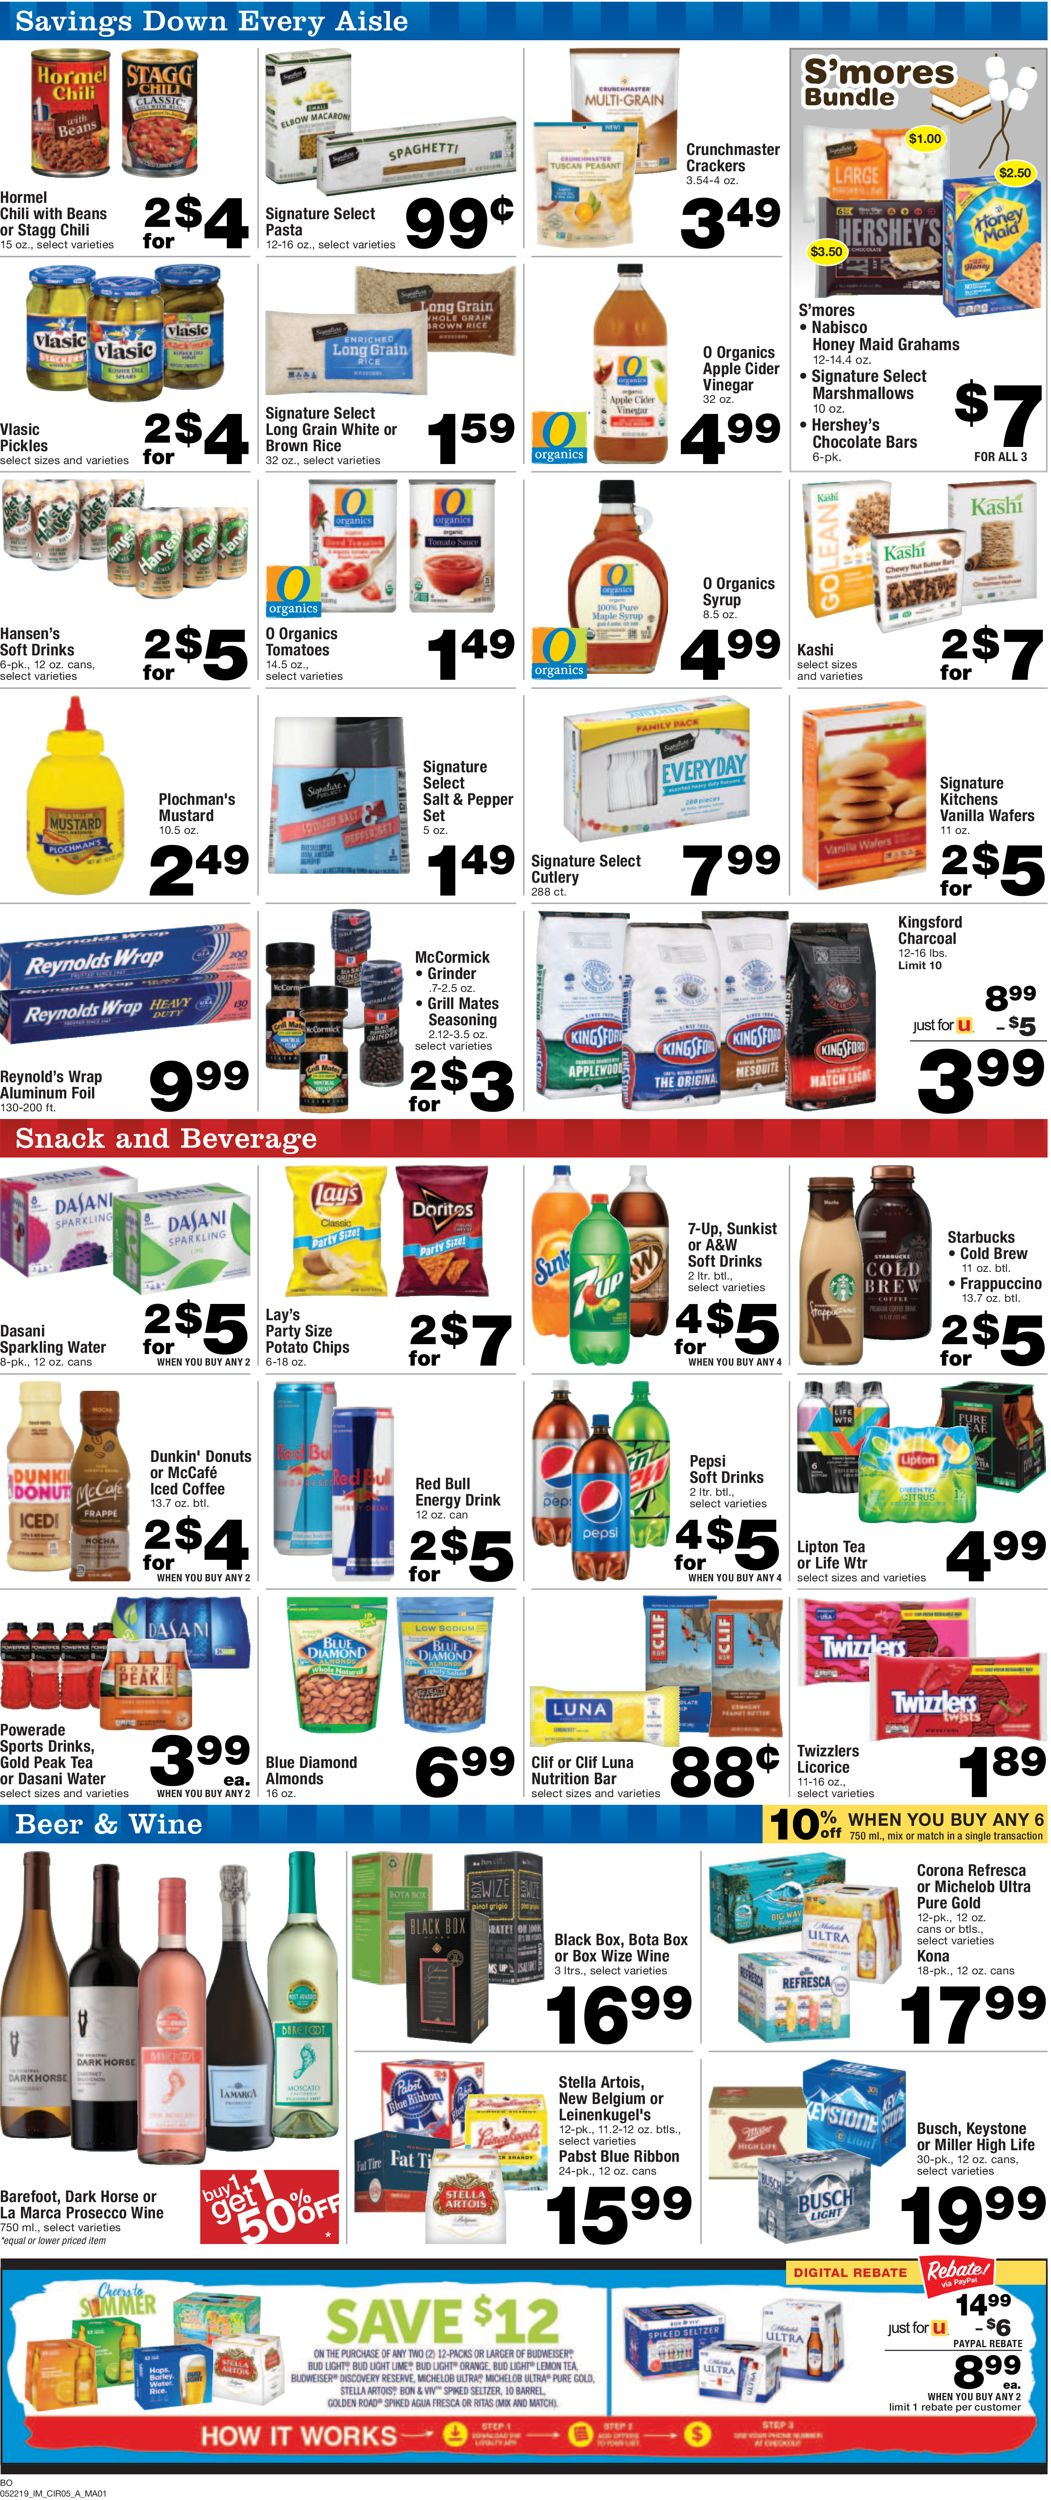 Albertsons Current weekly ad 05/22 - 05/28/2019 [6] - frequent-ads com